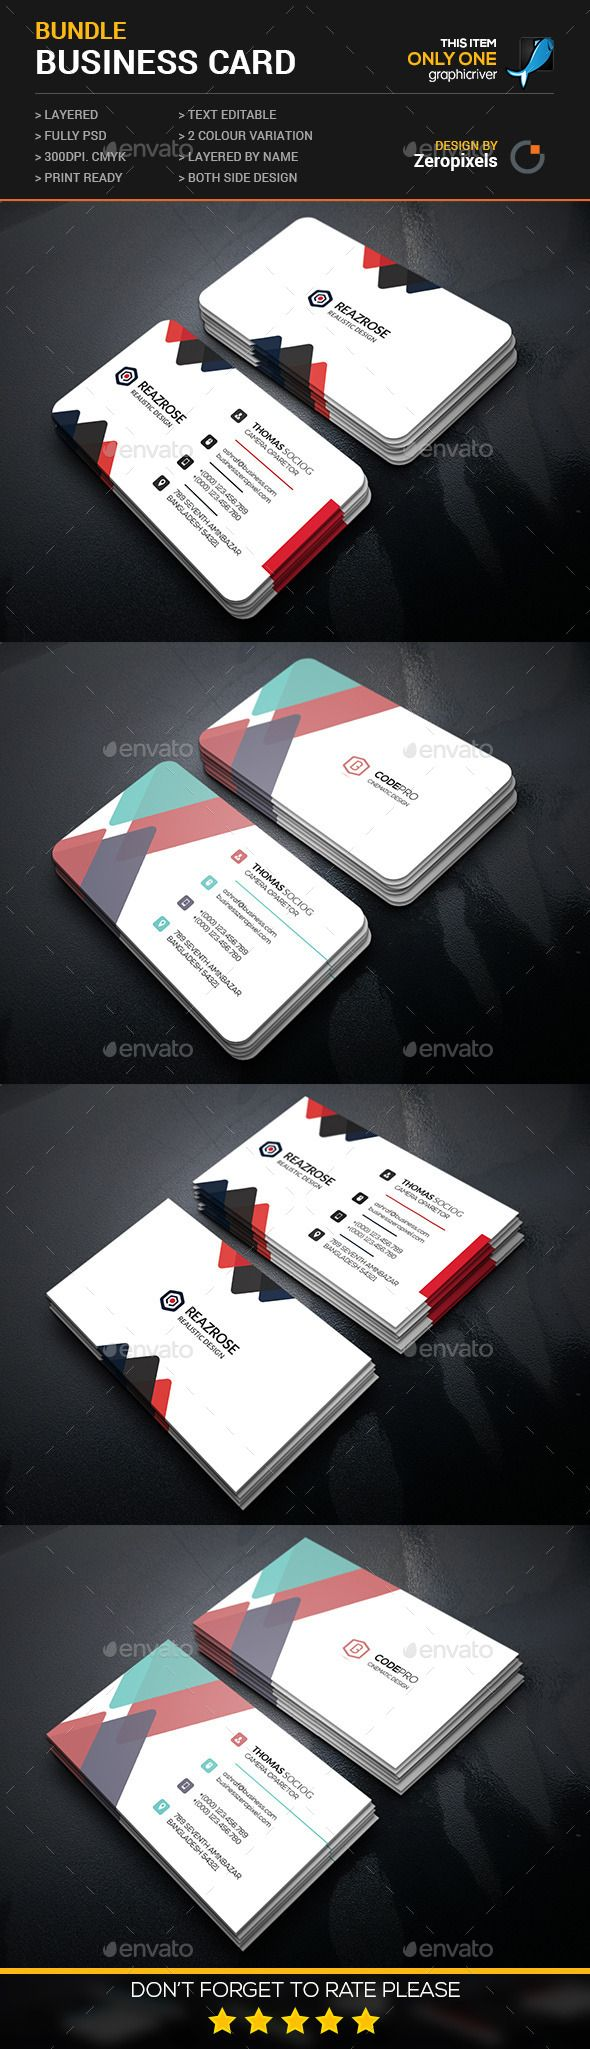 Abstract Corporate Business Card Bundle Template #print #design Download: http://graphicriver.net/item/abstract-corporate-business-card-bundle/12004099?ref=ksioks